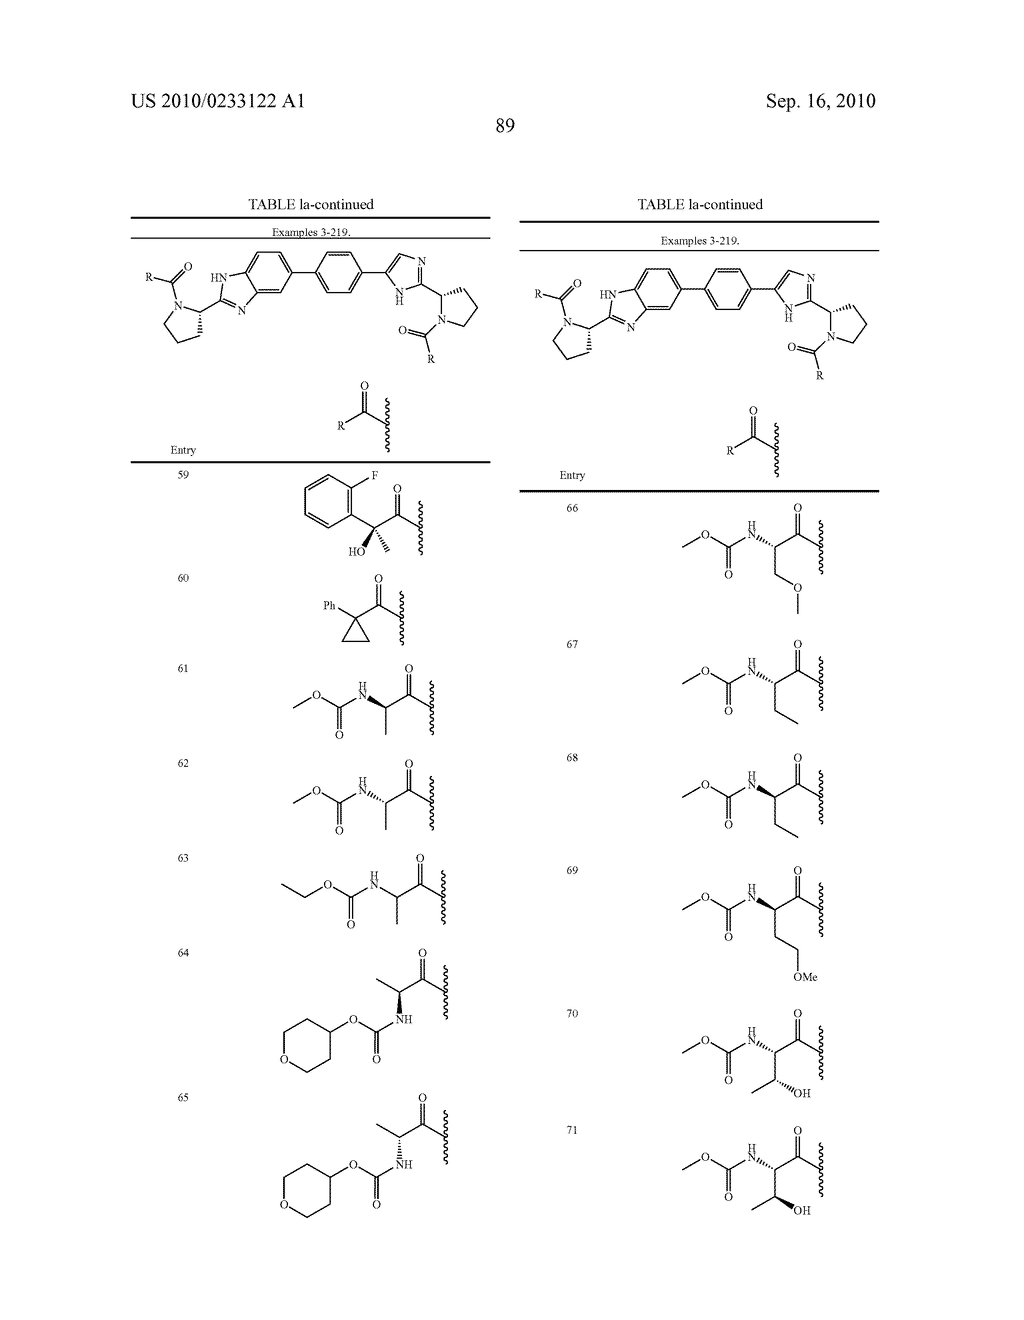 NOVEL BENZIMIDAZOLE DERIVATIVES - diagram, schematic, and image 90